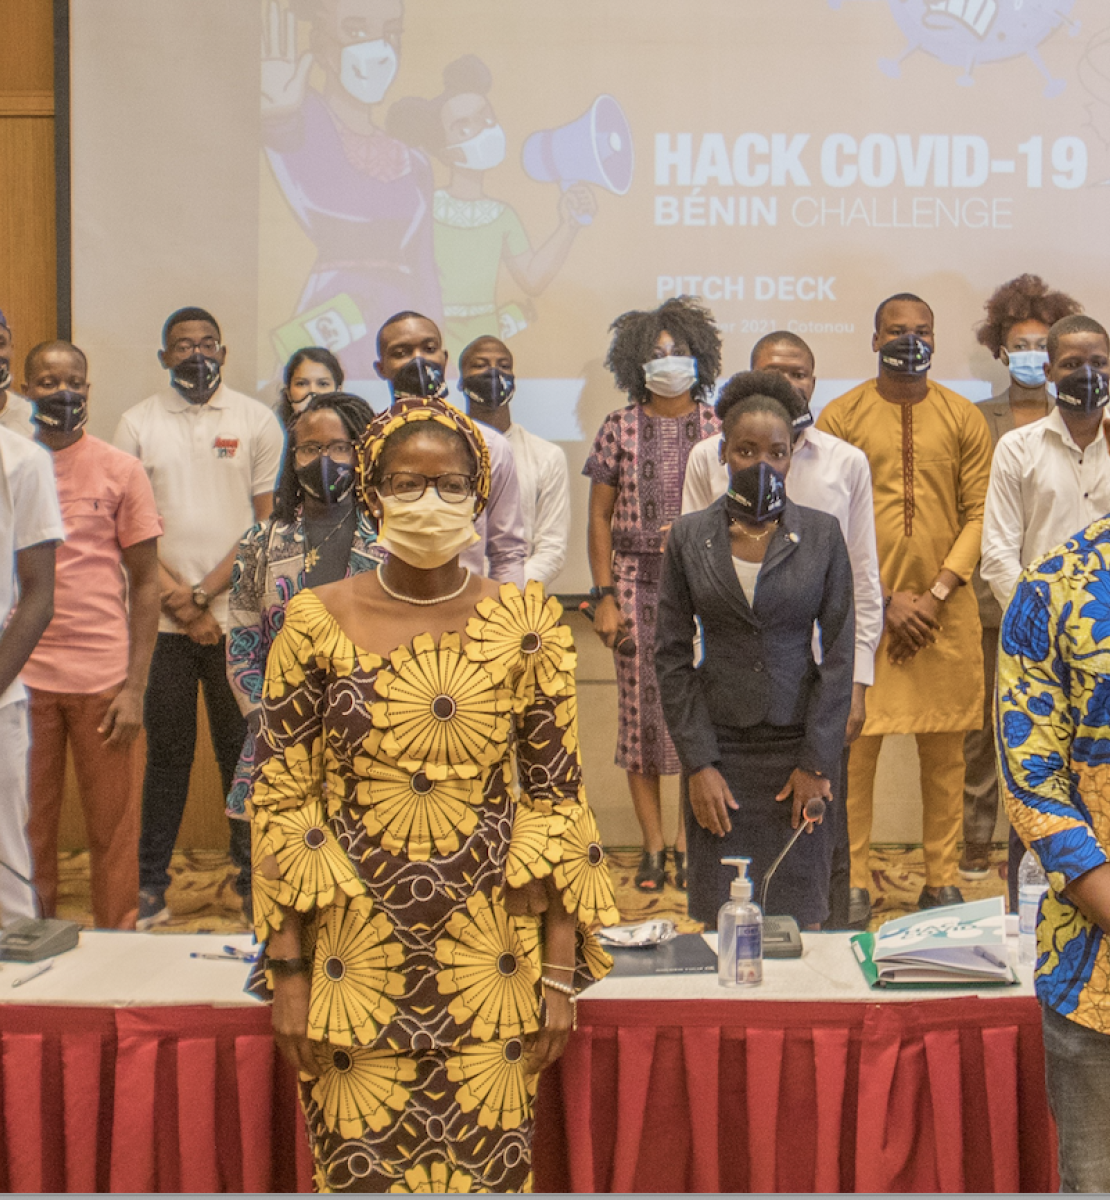 """A large group of people in face masks stand facing the camera in front of projector displaying the words """"Hack COVID-19."""""""